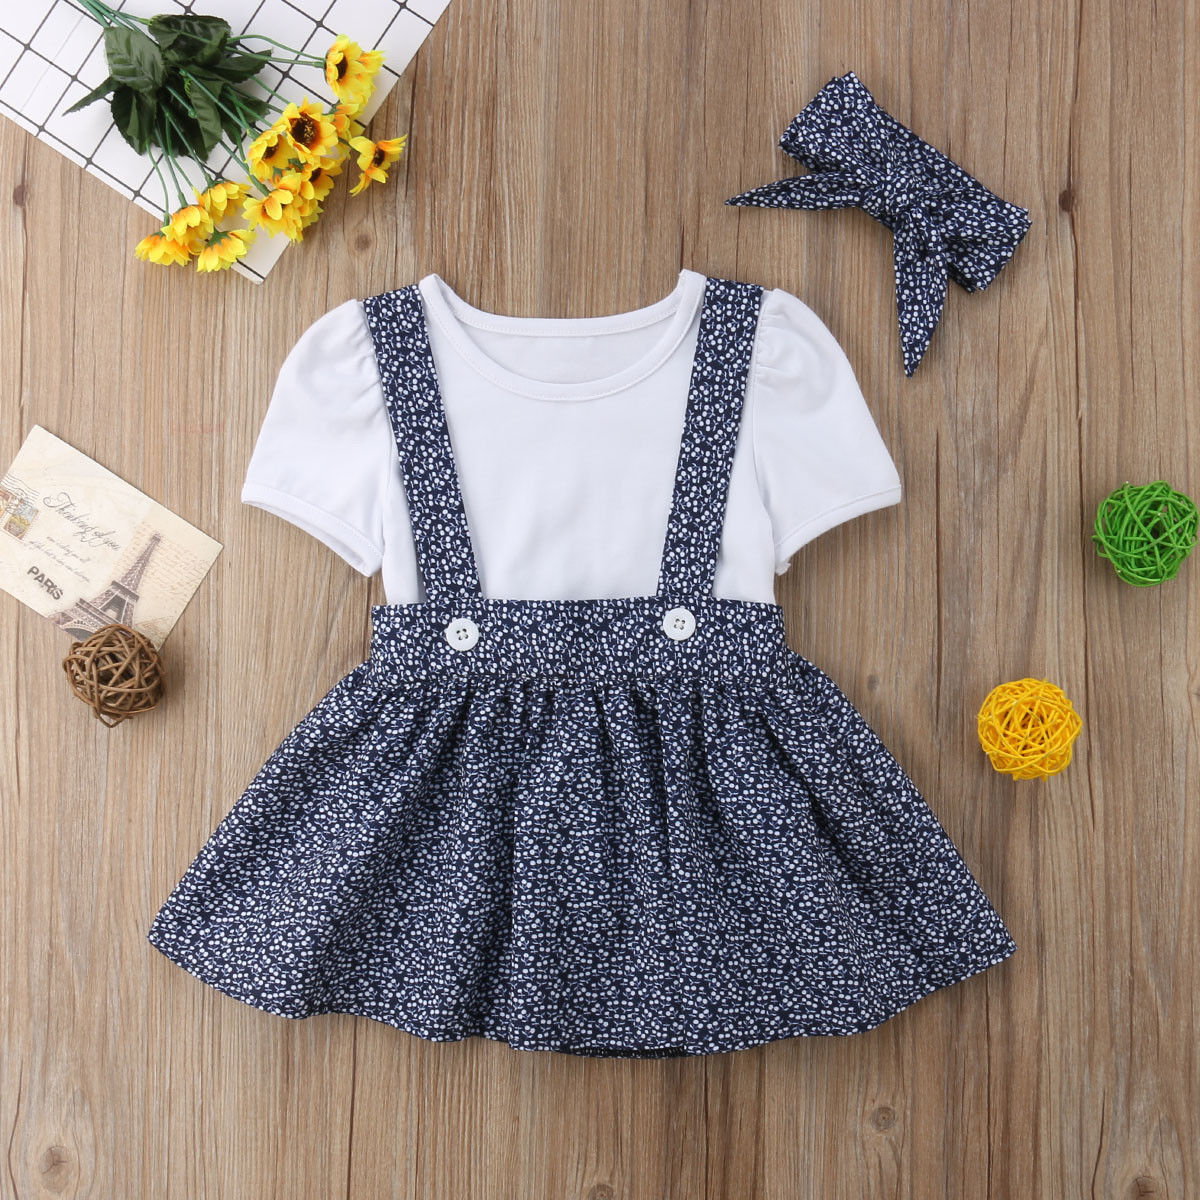 MOIKA Toddler Kid Baby Girl Princess Dress Clothes Sleeveless Rainbow Printed Button Denim Dress with Pockets Blue 6 Months-4 Years Old